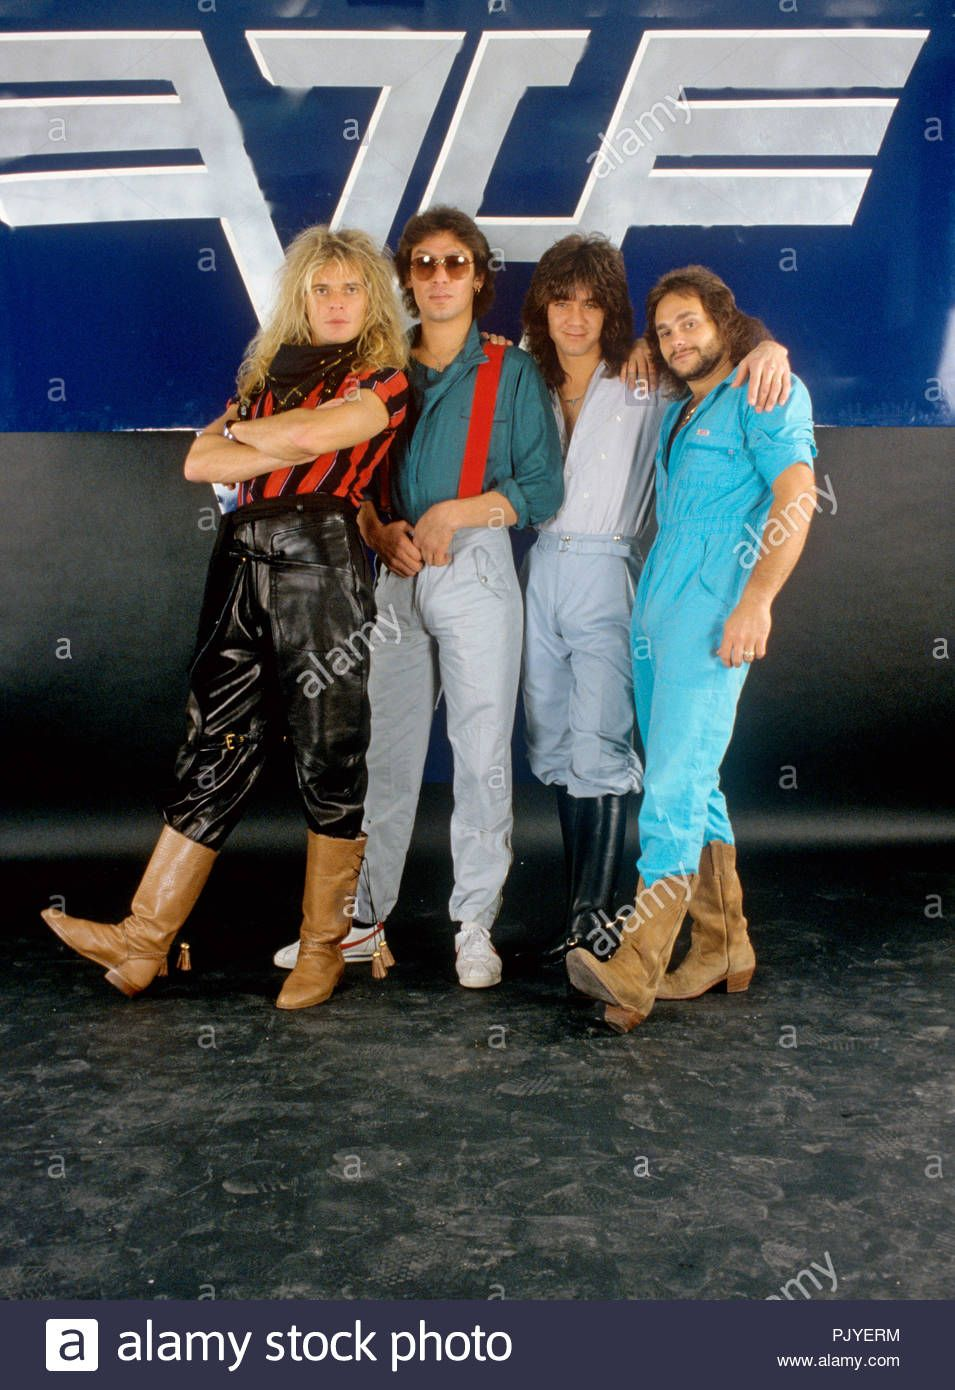 Let S Lean Into Now Guys Rf Eddie Van Halen Van Halen David Lee Roth